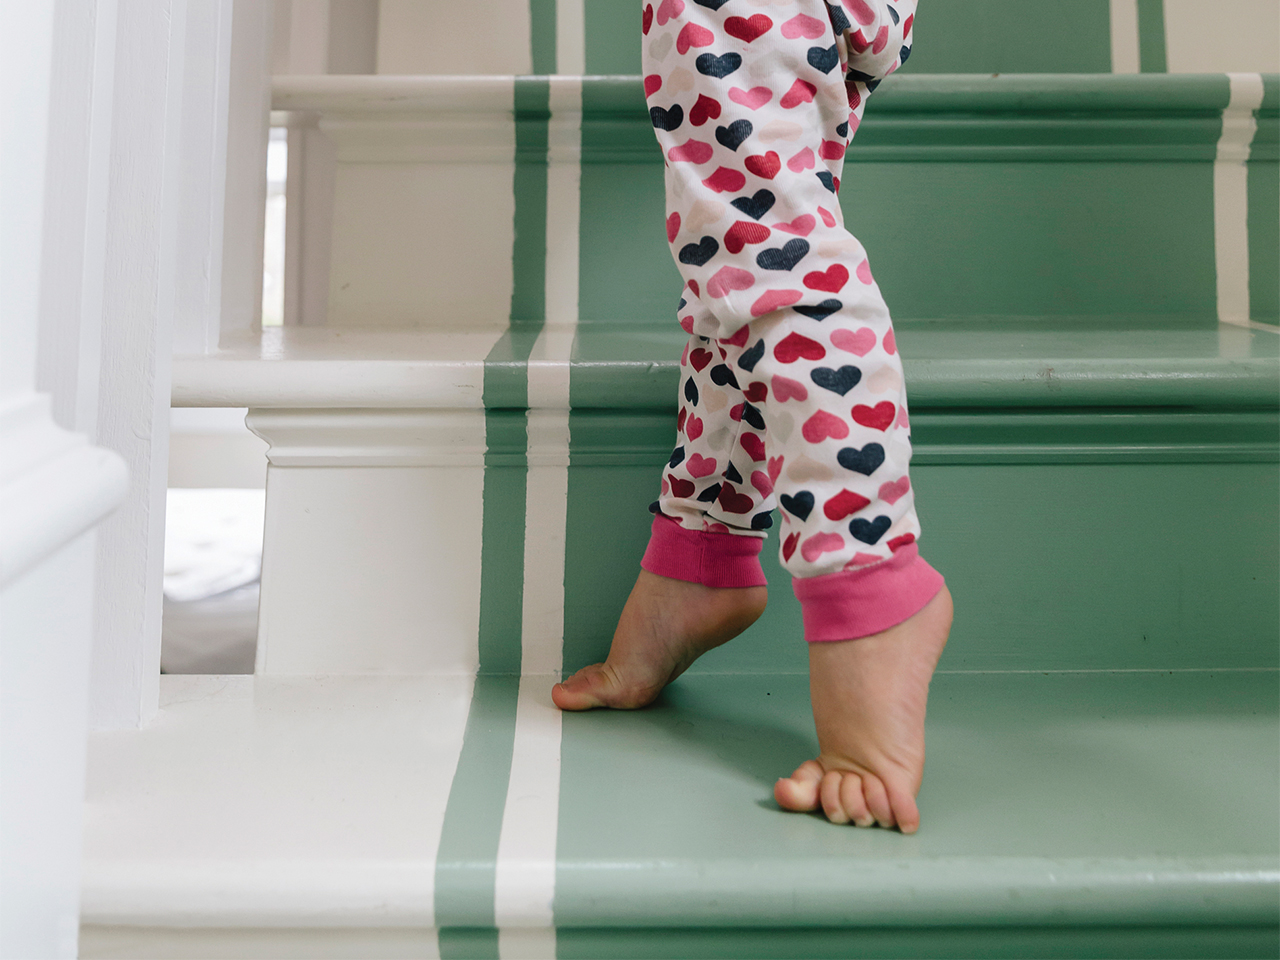 A toddler walks up stairs on her tiptoes